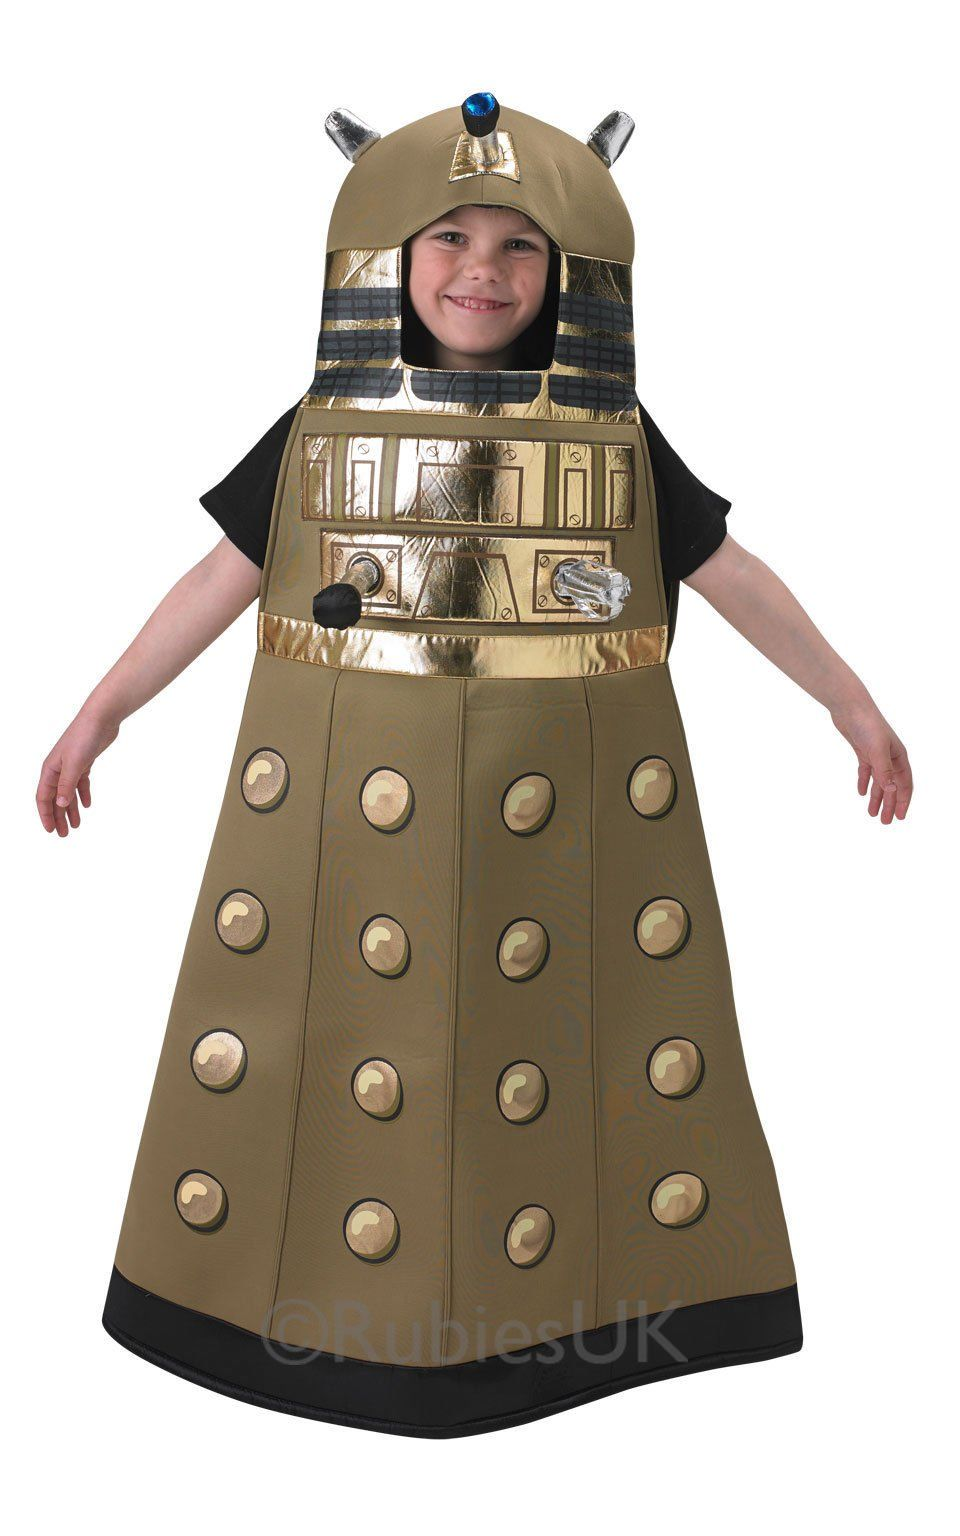 official boys dalek doctor dr who book day halloween robot sci fi space futuristic fancy dress - Kids Doctor Halloween Costume